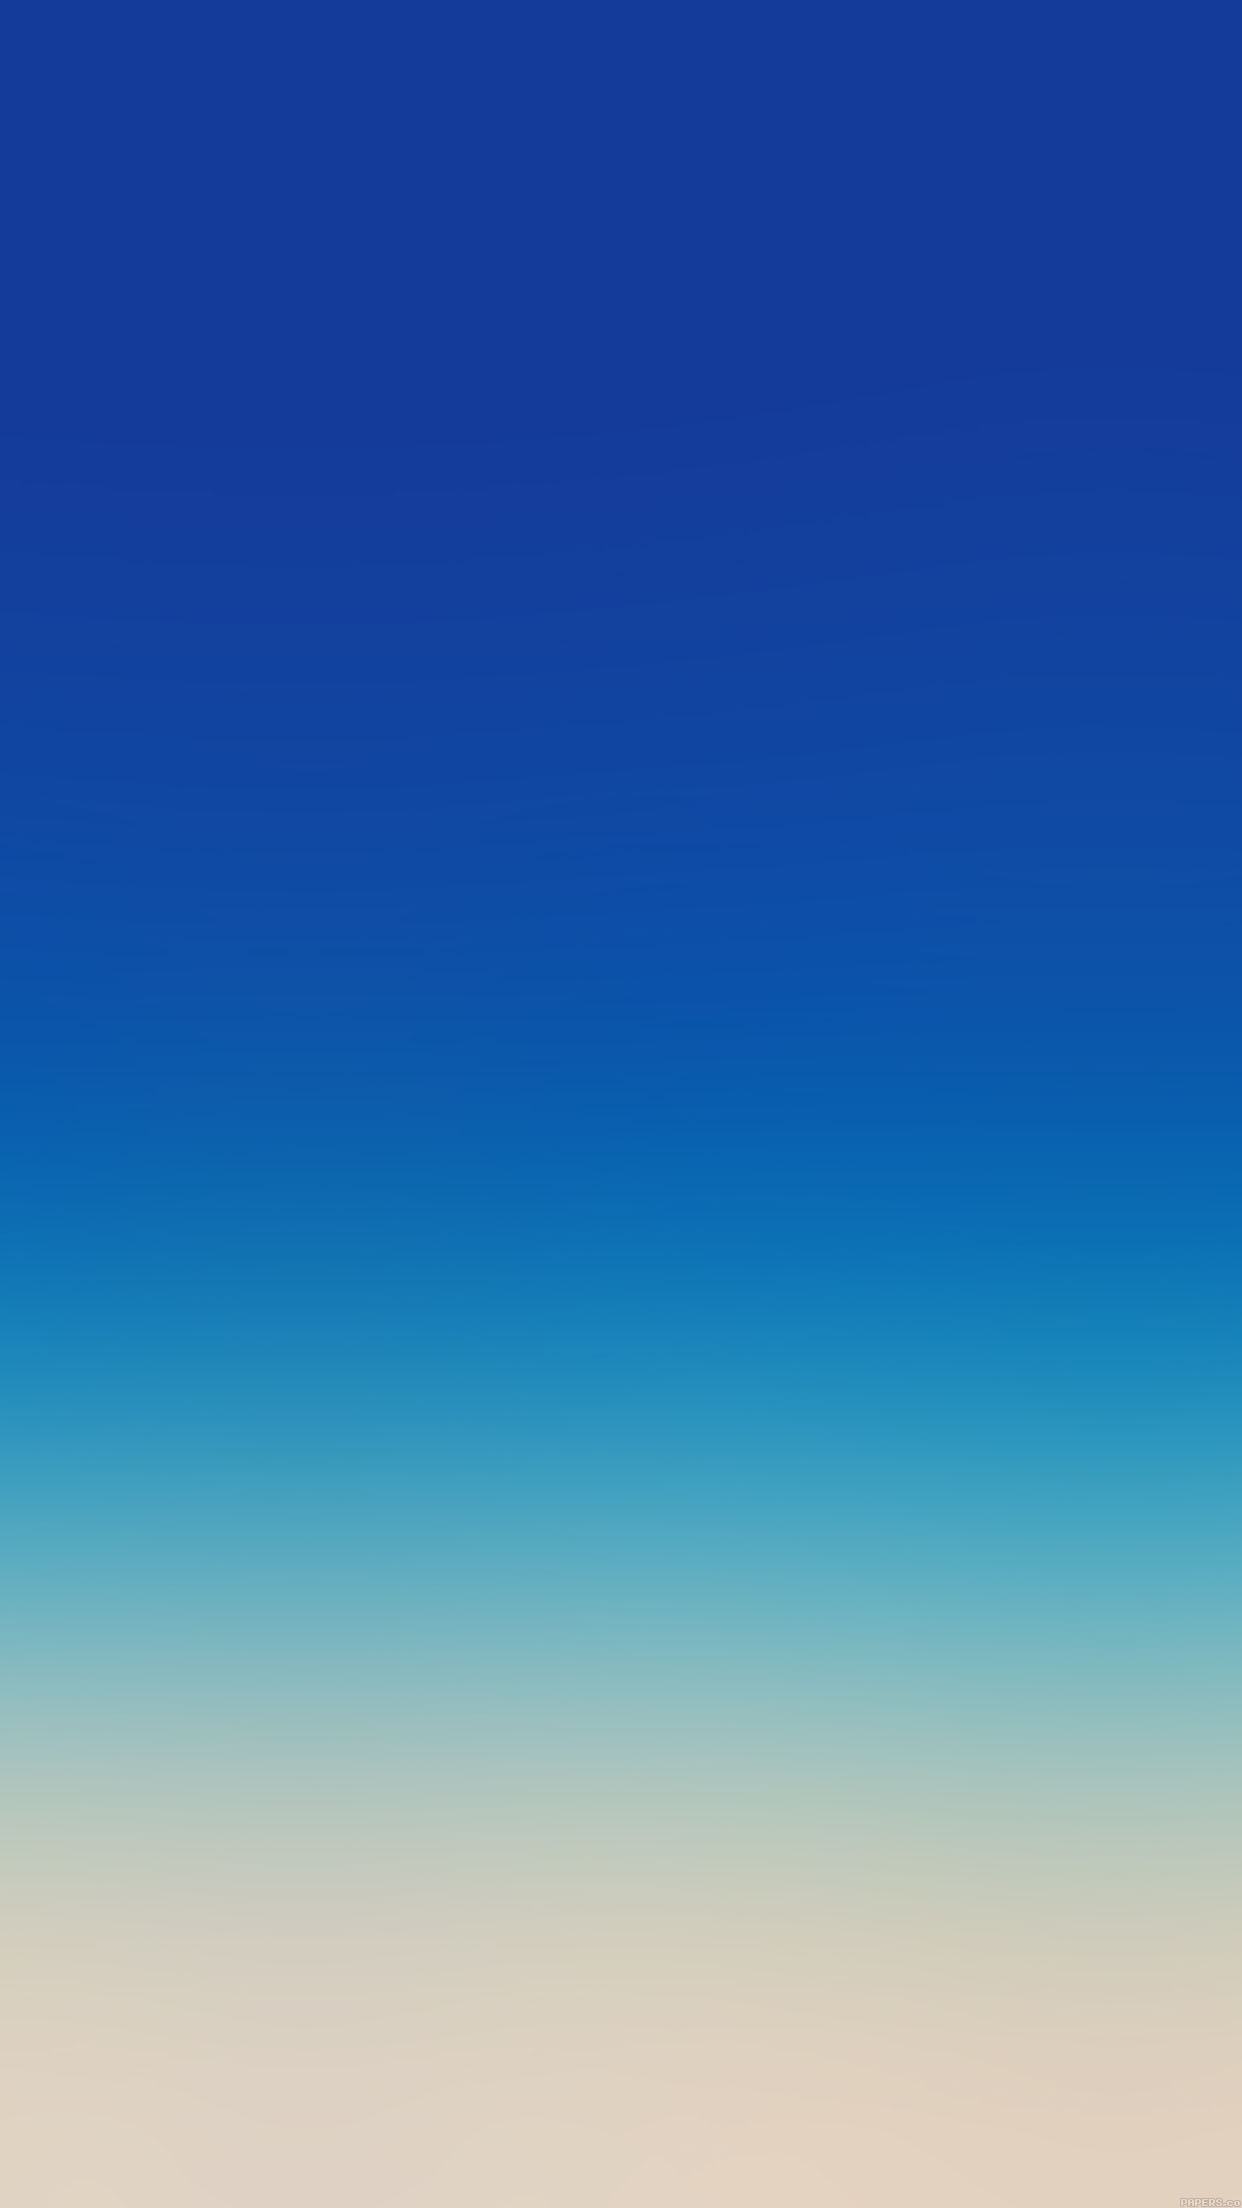 Papers Co Iphone Wallpaper Sa08 Blue Sky Blue Blur